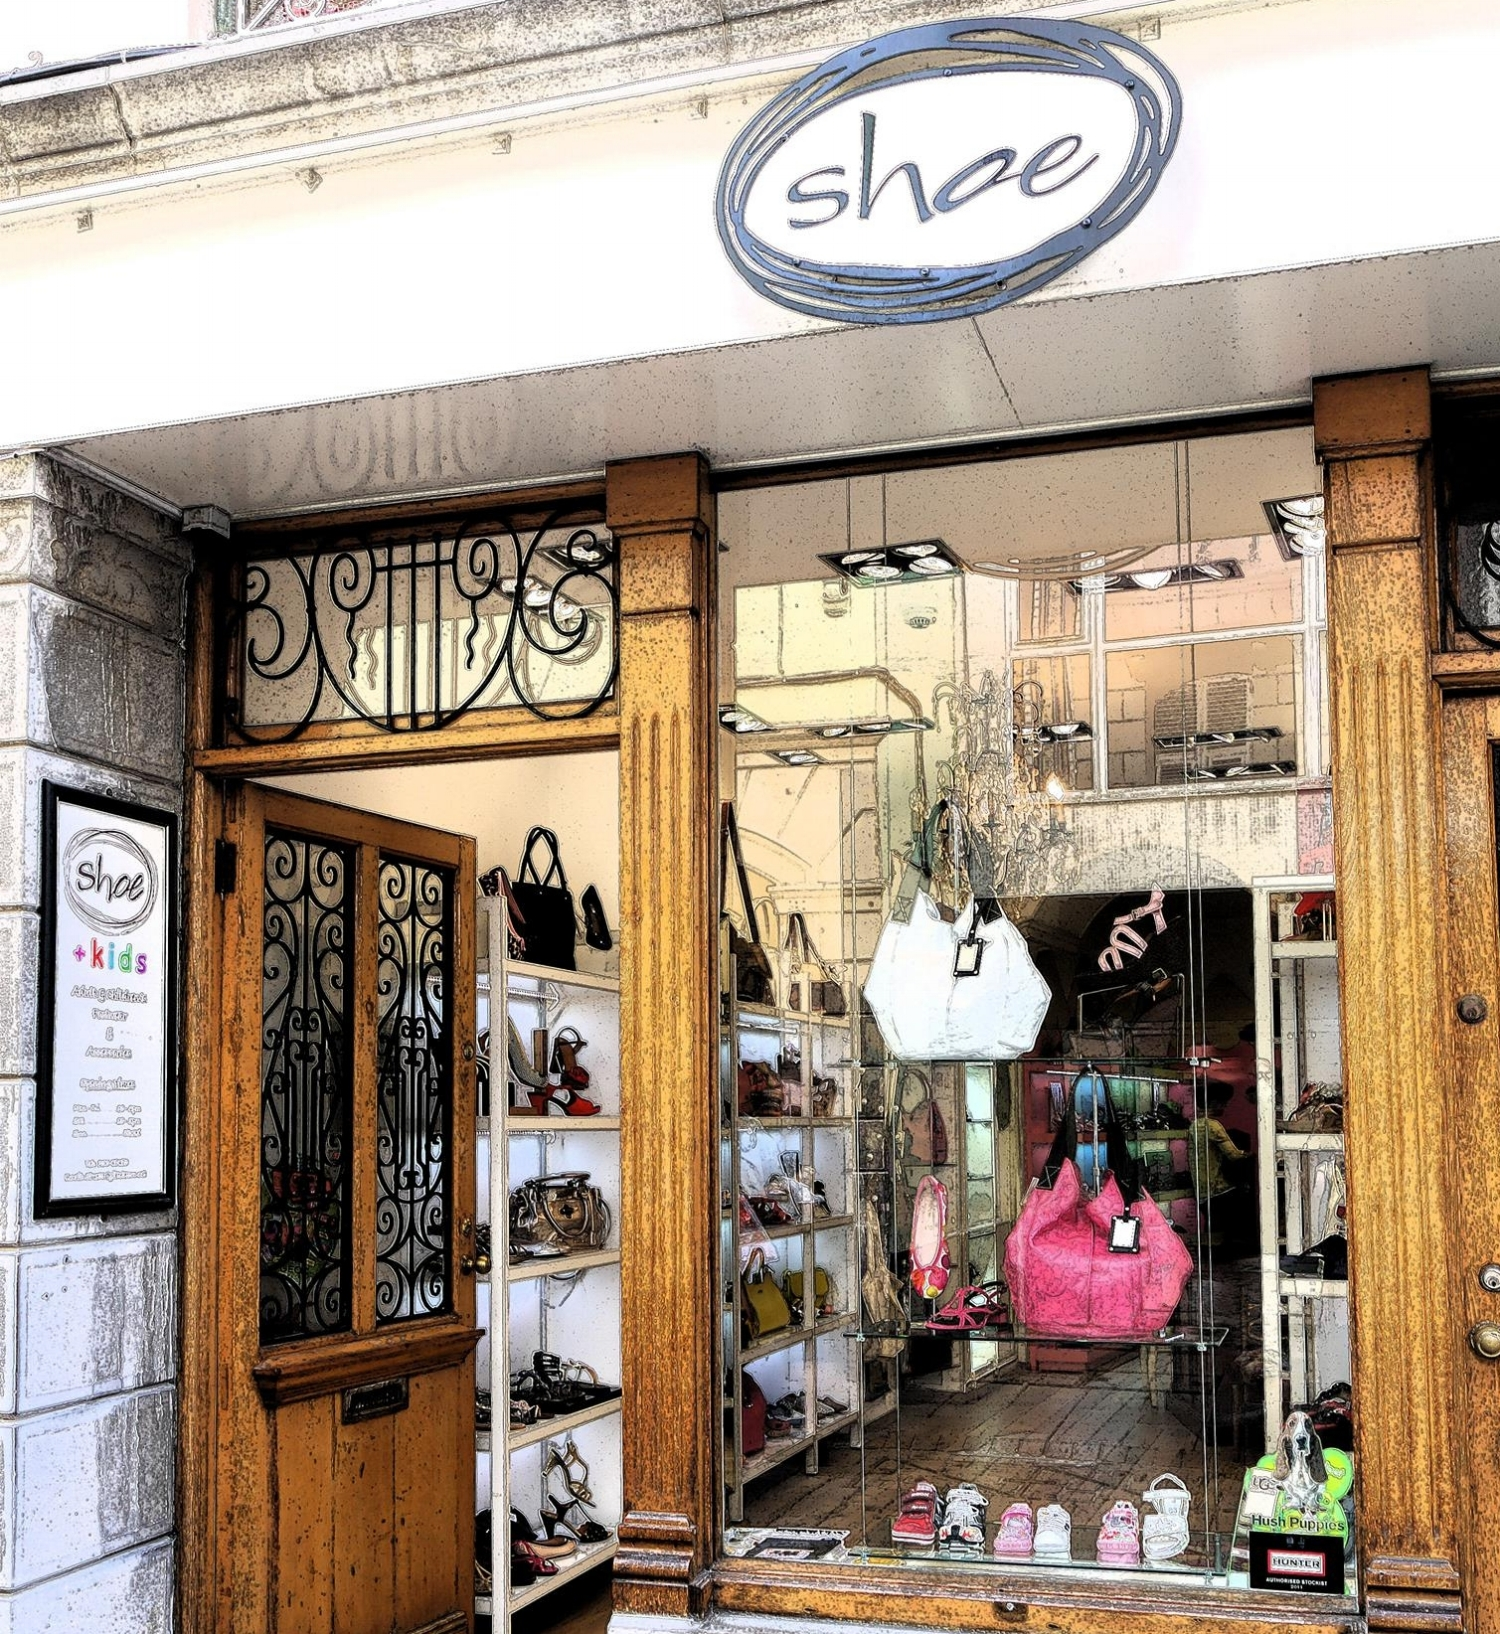 Italian Style - If you're looking for a change from chain store footwear you'll fall in love with Shoe's designer range of soft Italian leather boots, shoes and handbags.